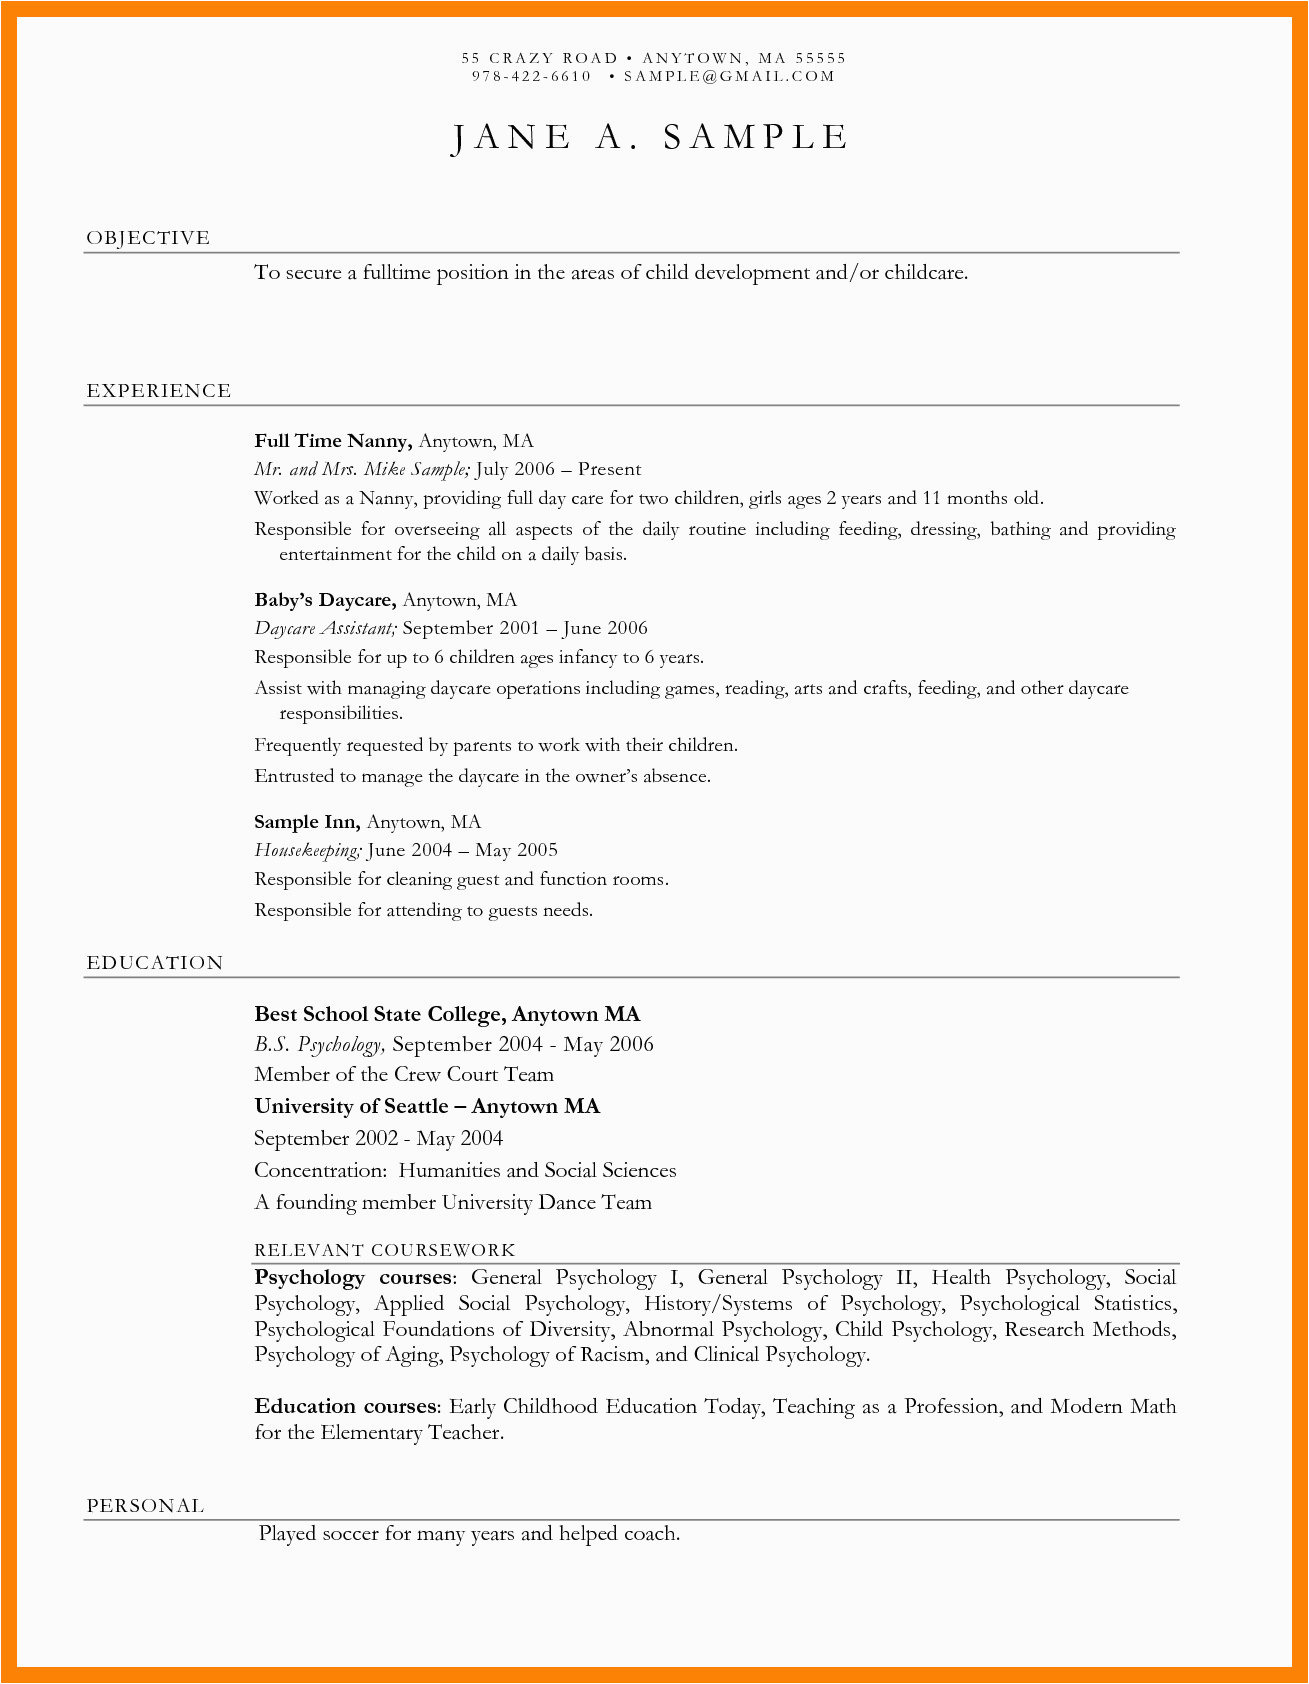 Sample Resume for Daycare Worker with No Experience Cover Letter for Daycare Worker No Experience